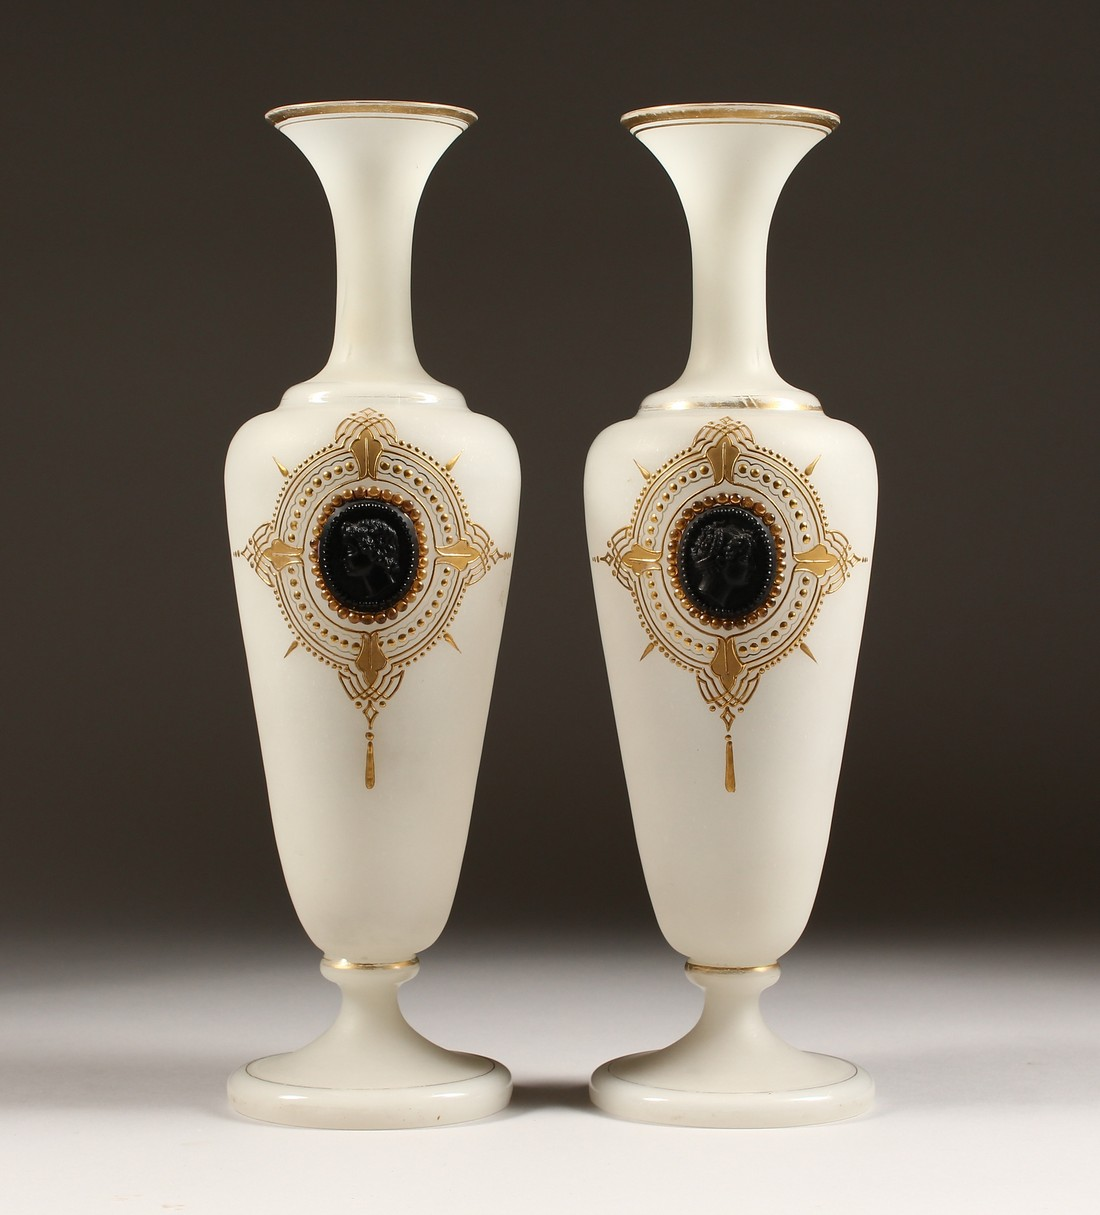 A PAIR OF CAMEO CLASSIC FROSTED VASES with a black cameo with gilt decorations 12ins high.